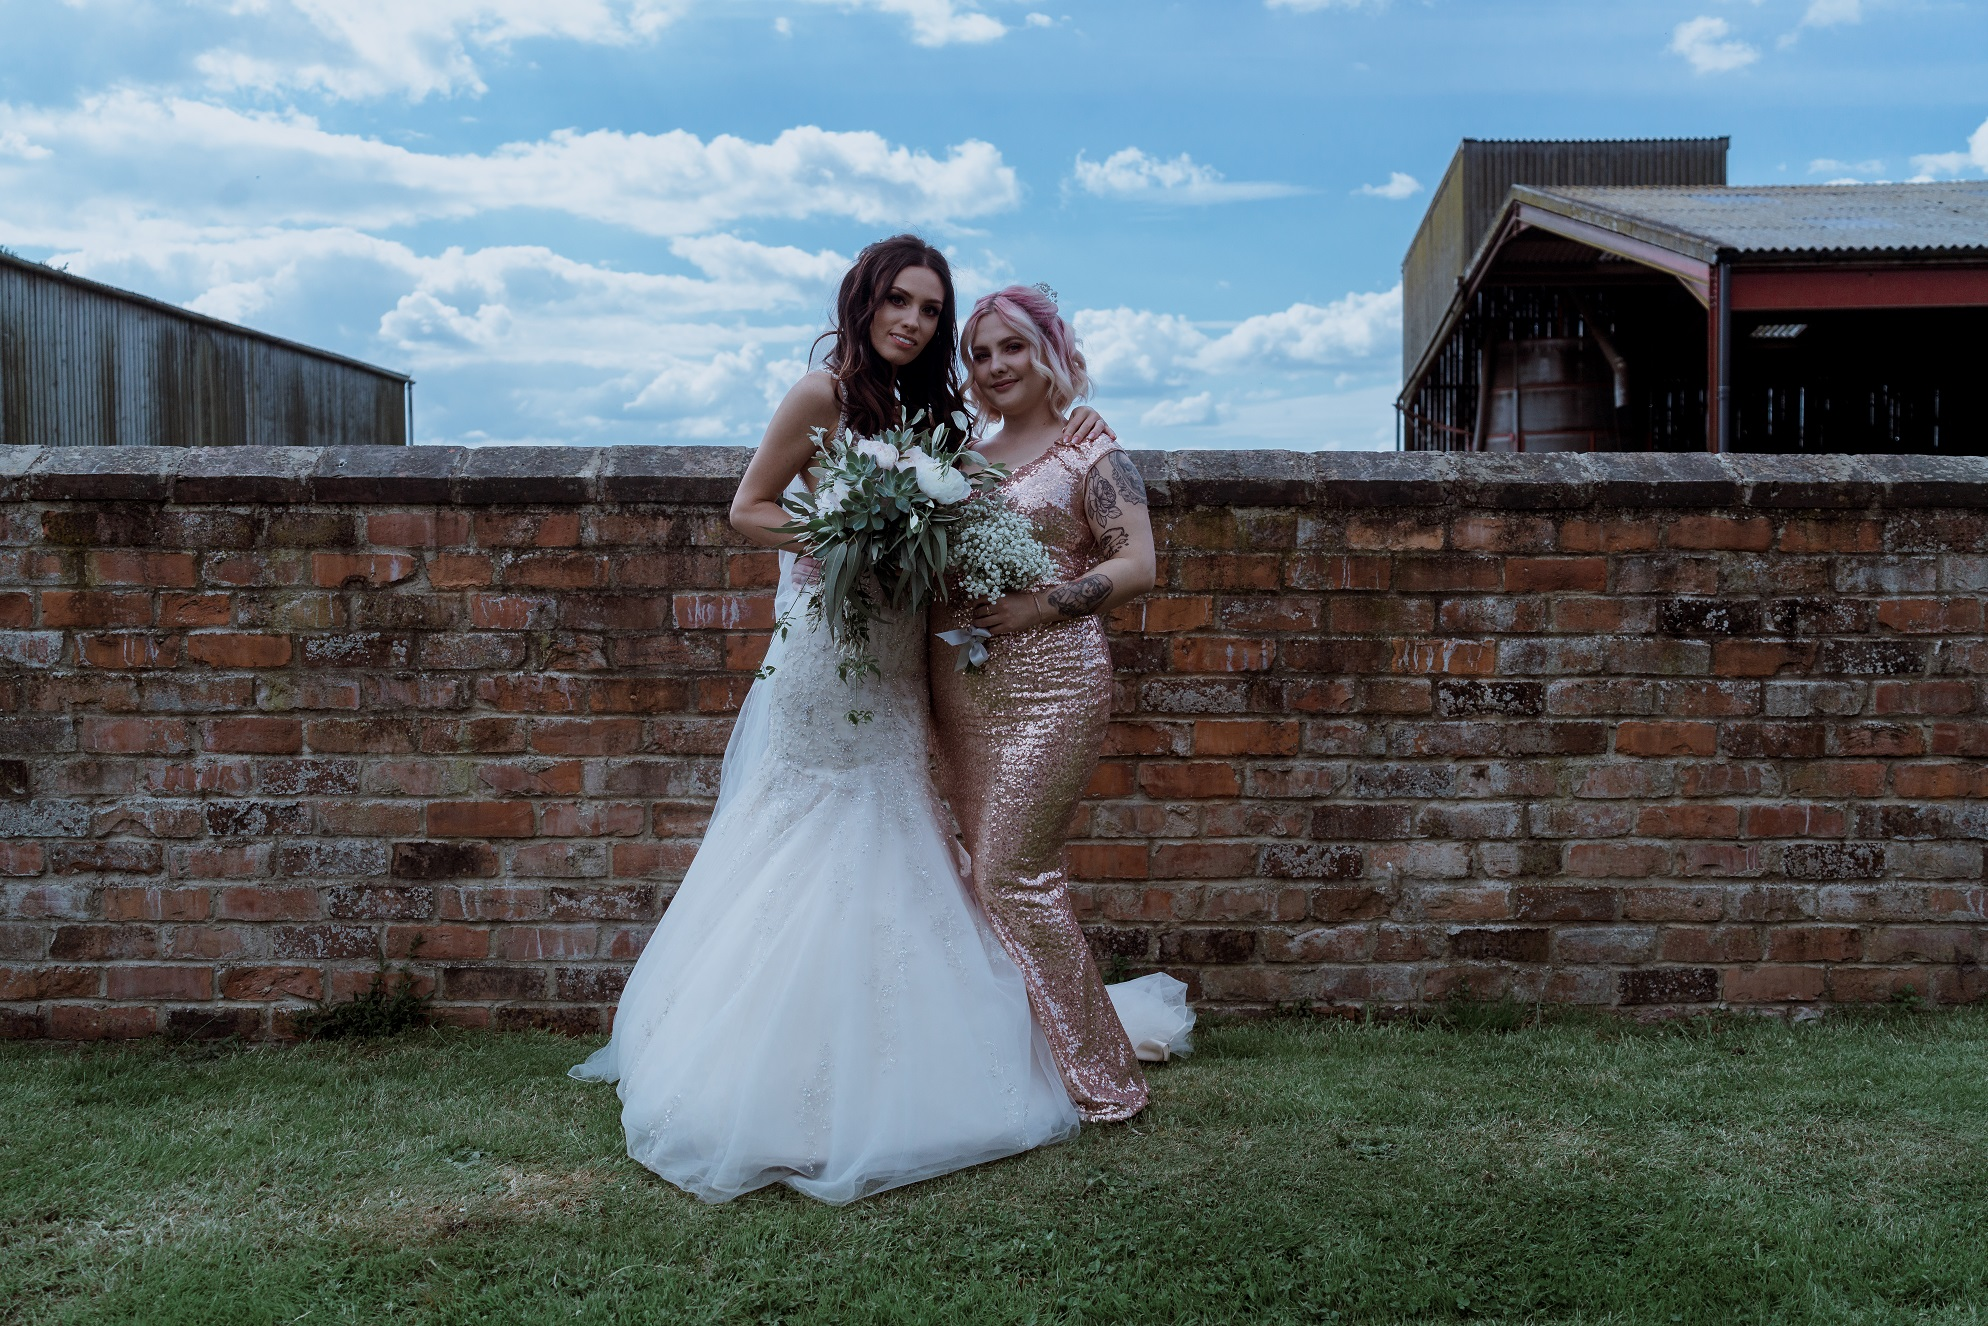 Girl squad! Bride and bridesmaid at The Normans. Photo by www.sevenpoints.uk